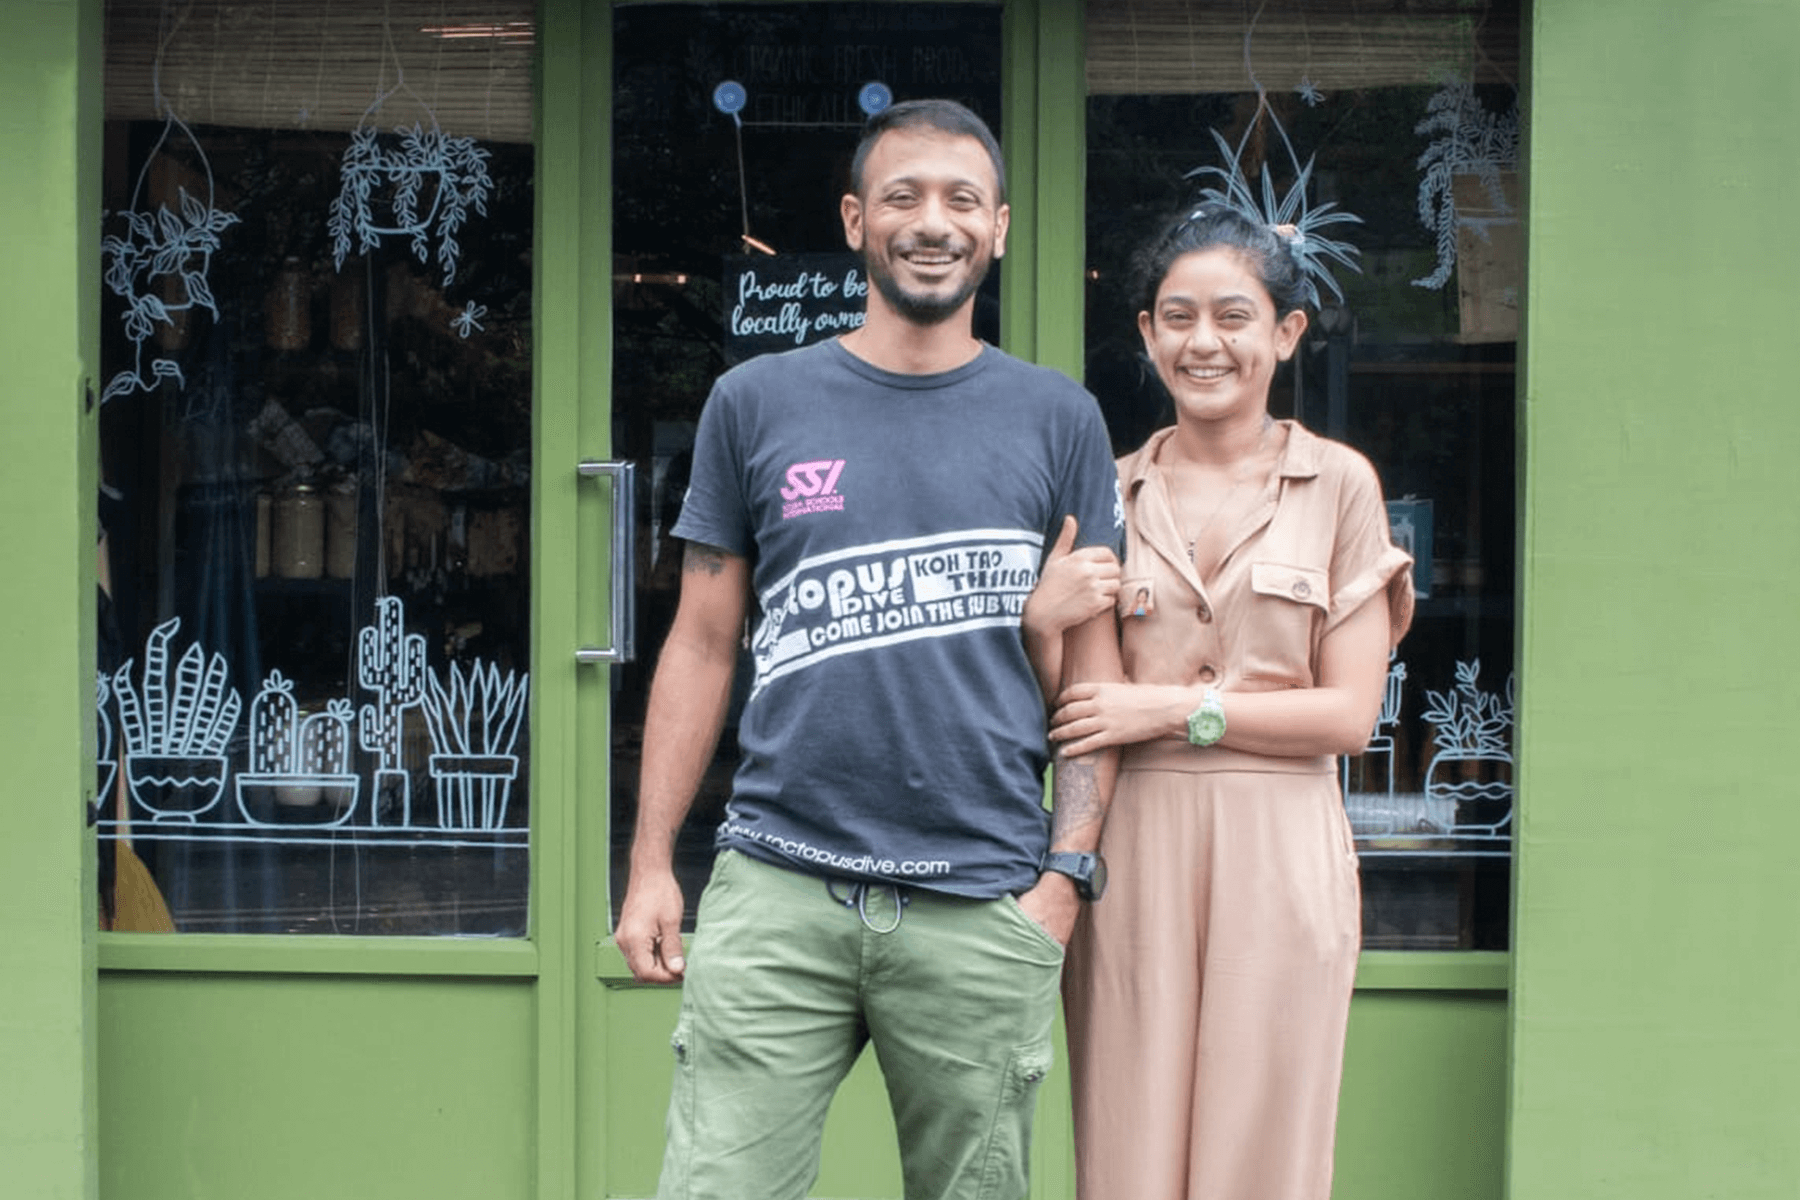 Founders | Vnya Organics | Our Story